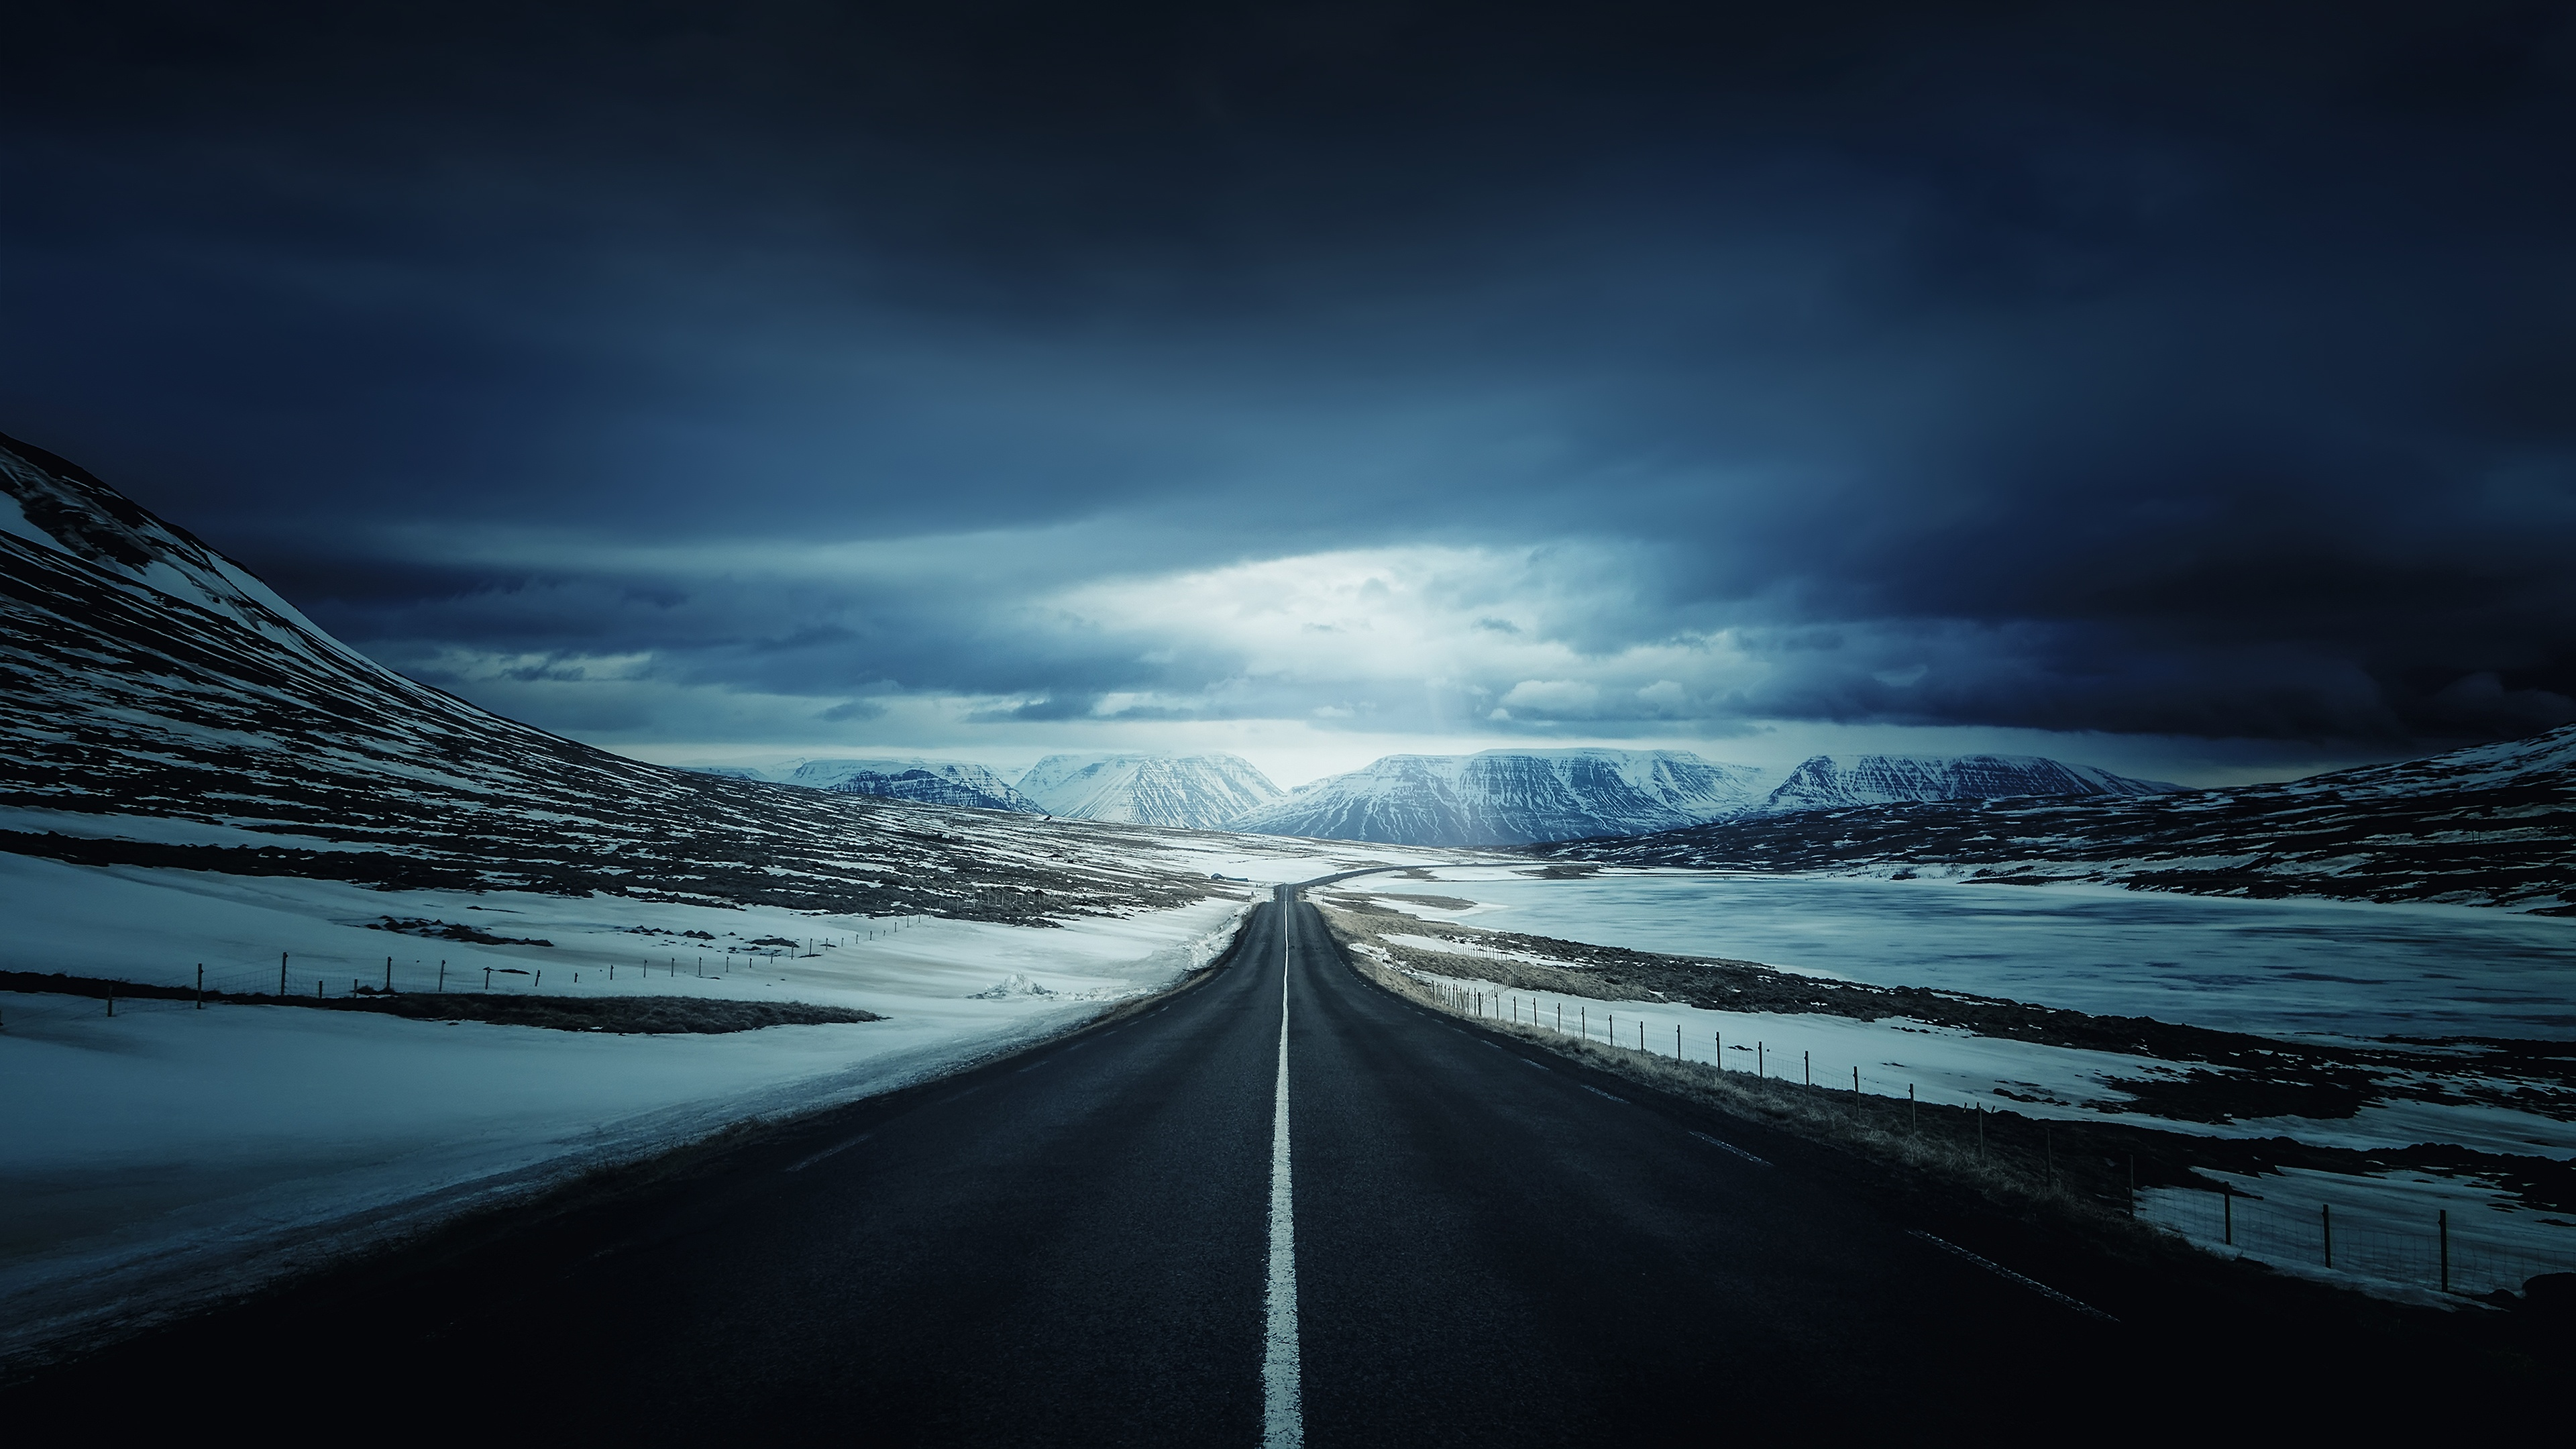 Winter Road 4k Ultra Hd Wallpaper 3840x2160 340x220